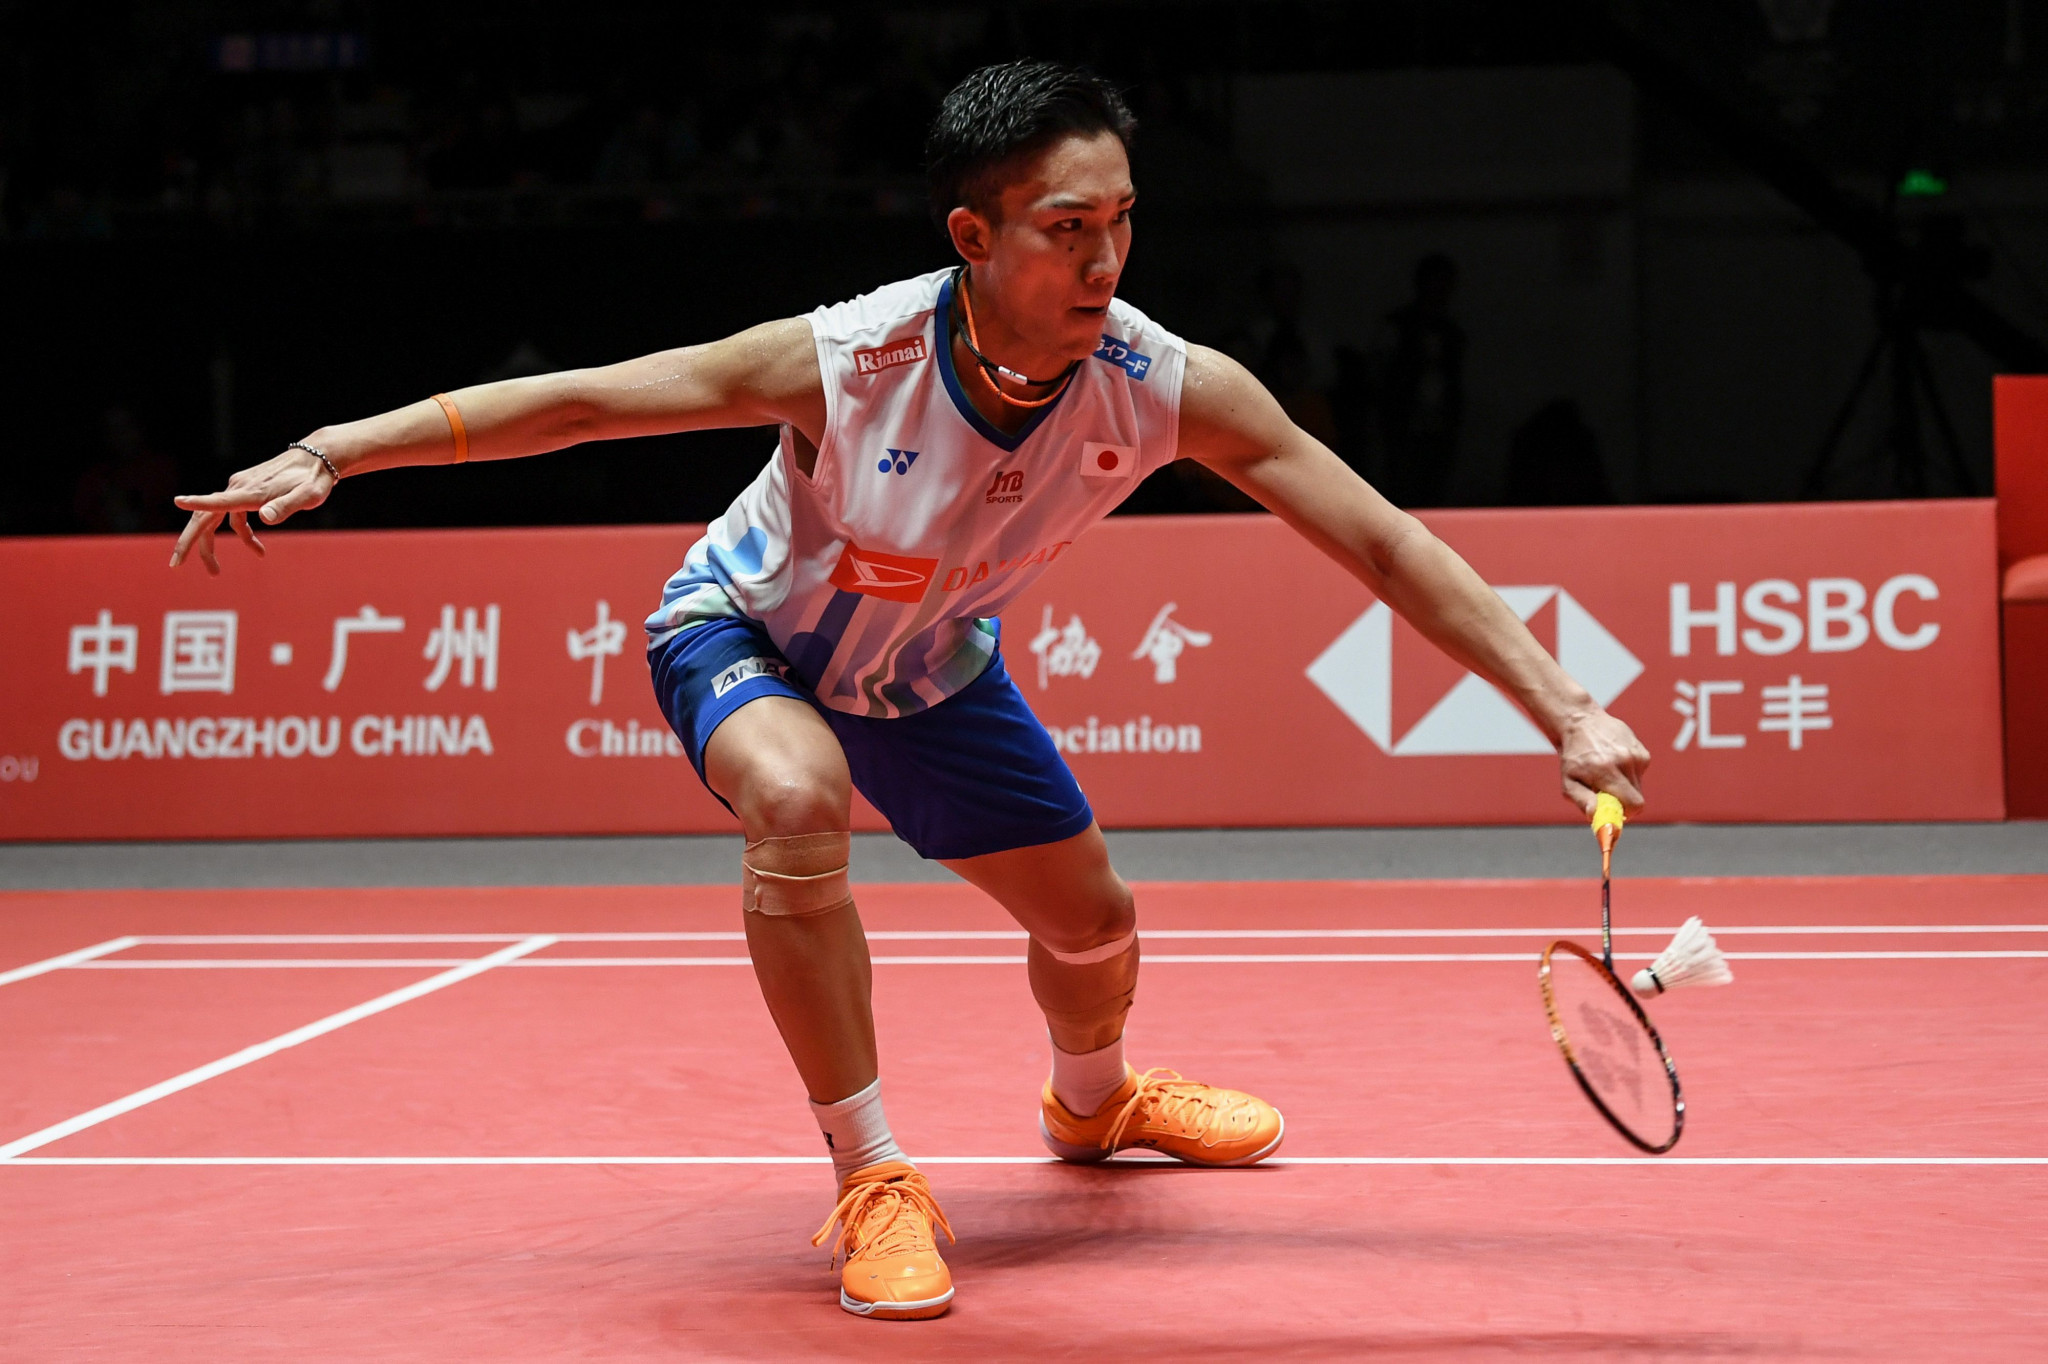 Double Japanese joy as Momota and Yamaguchi triumph at BWF German Open